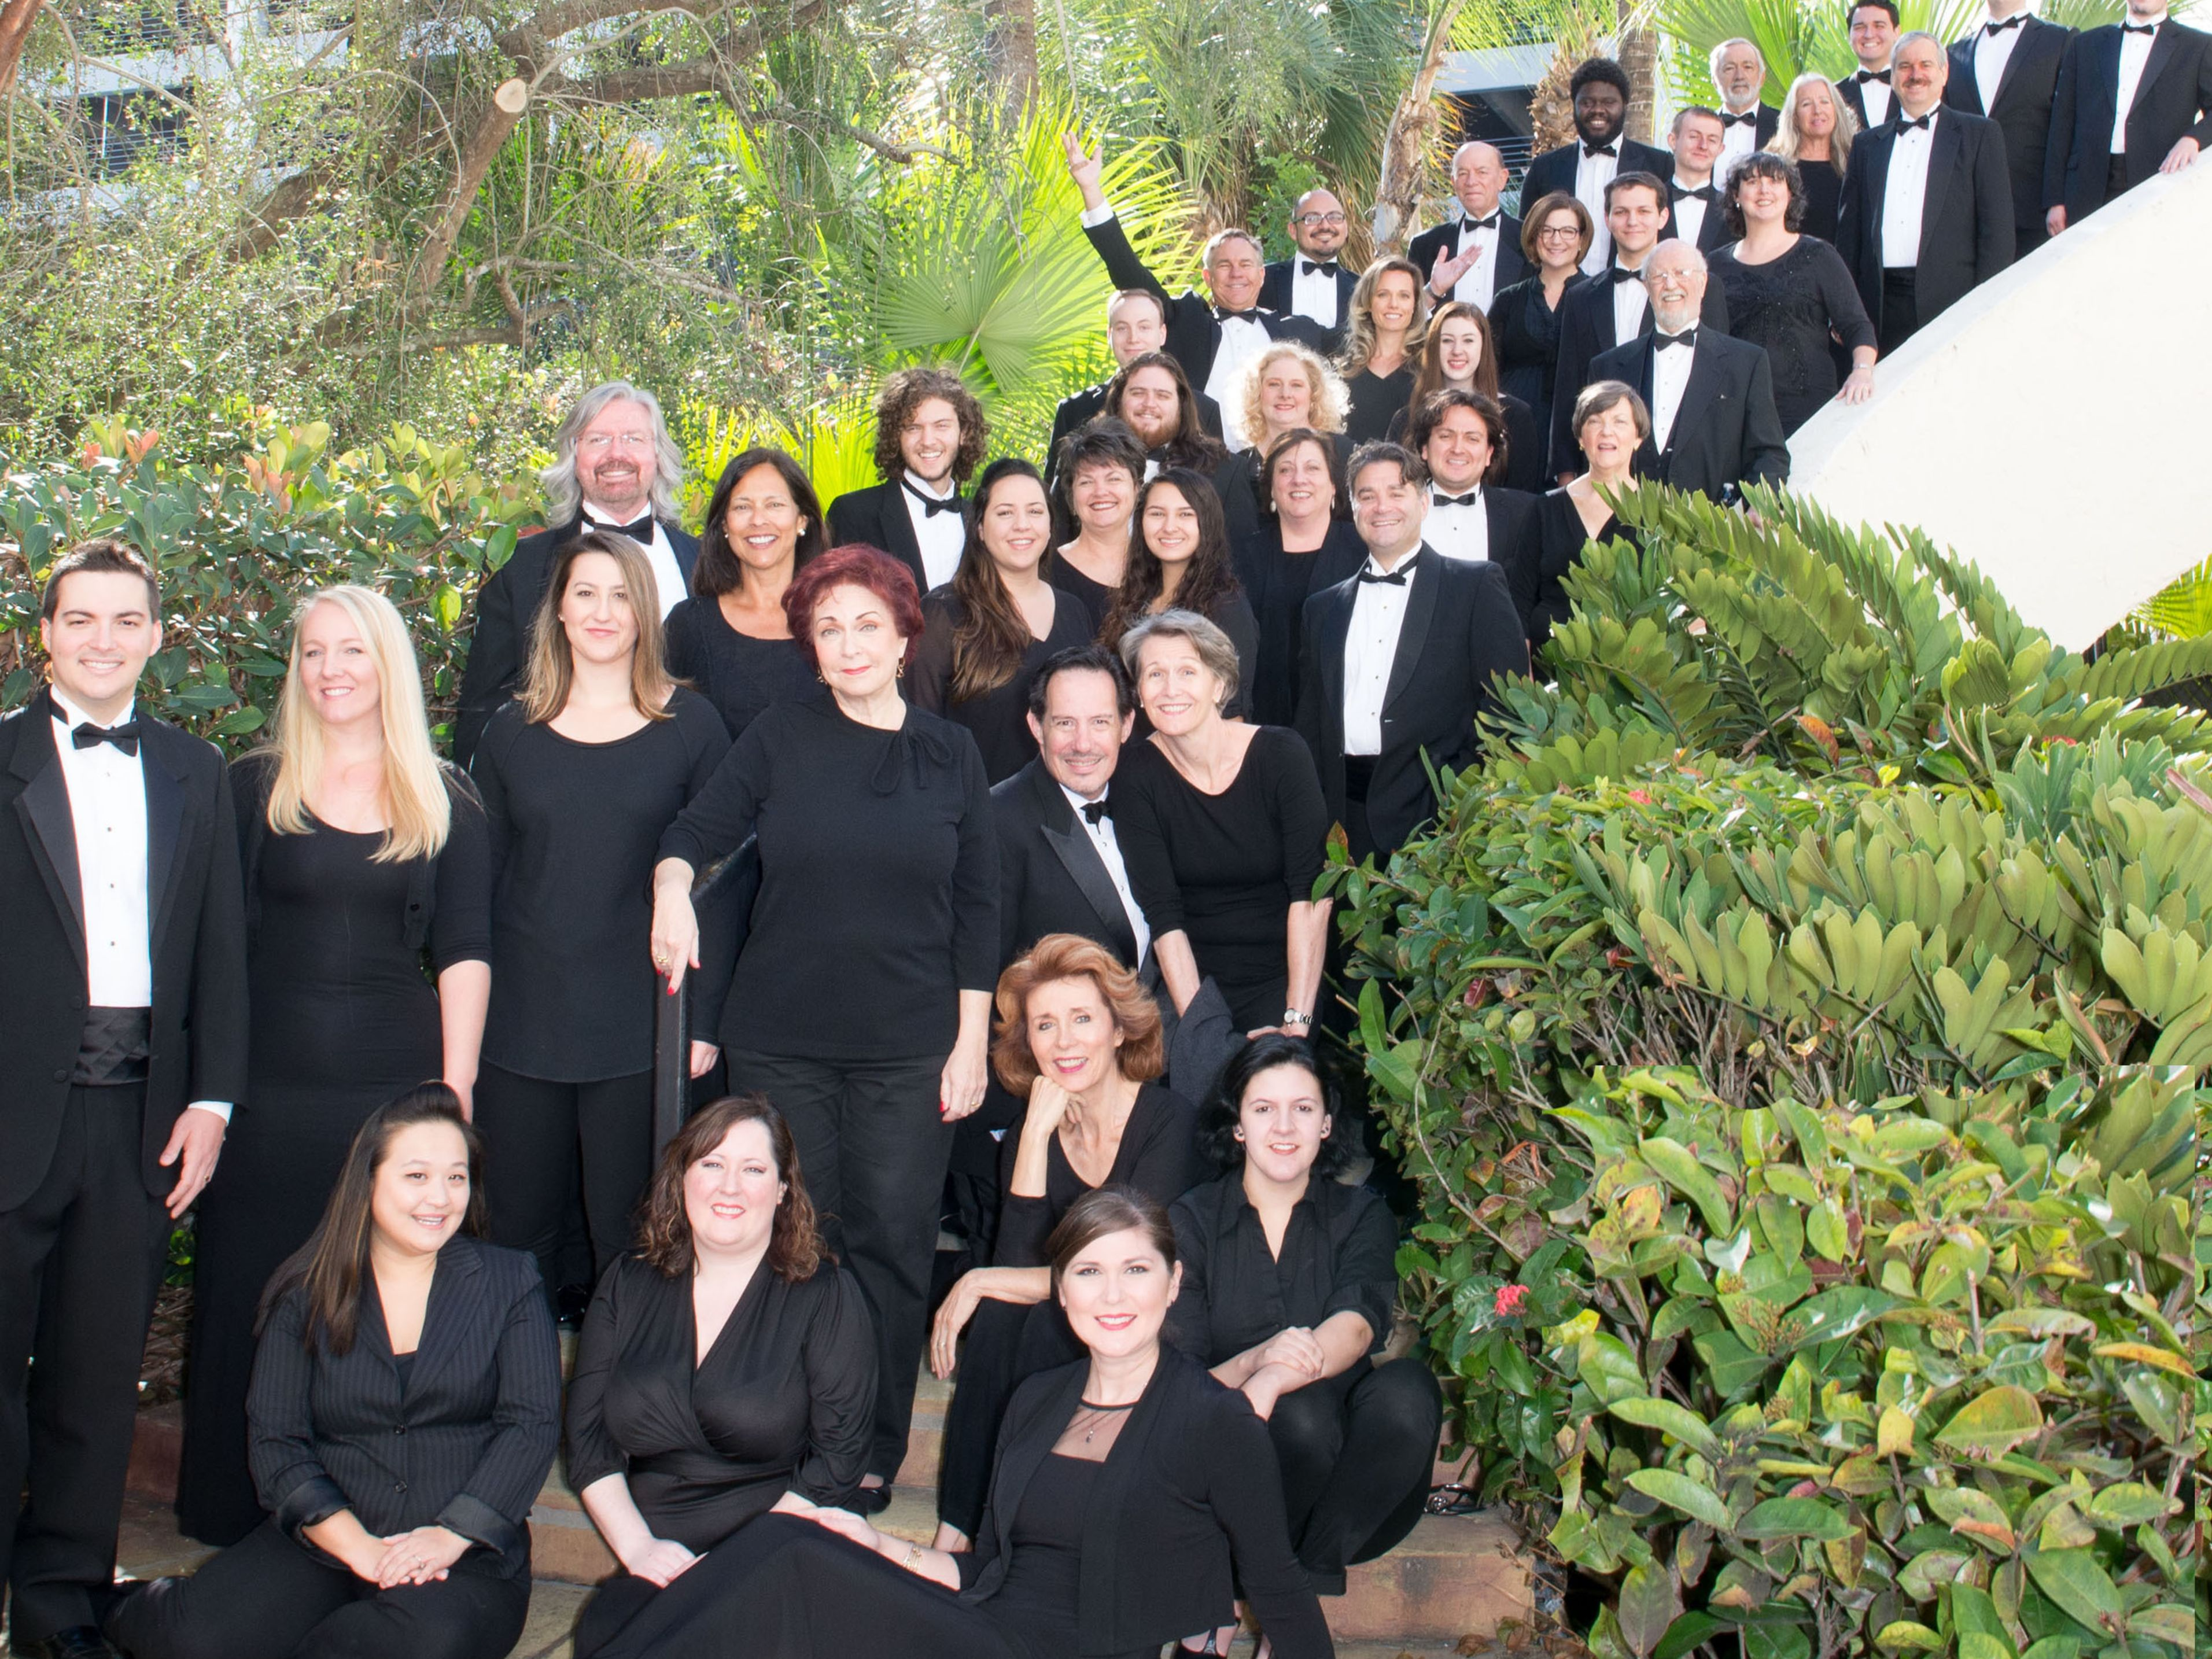 Gloria musicae singers april 2017 02 lmp09o